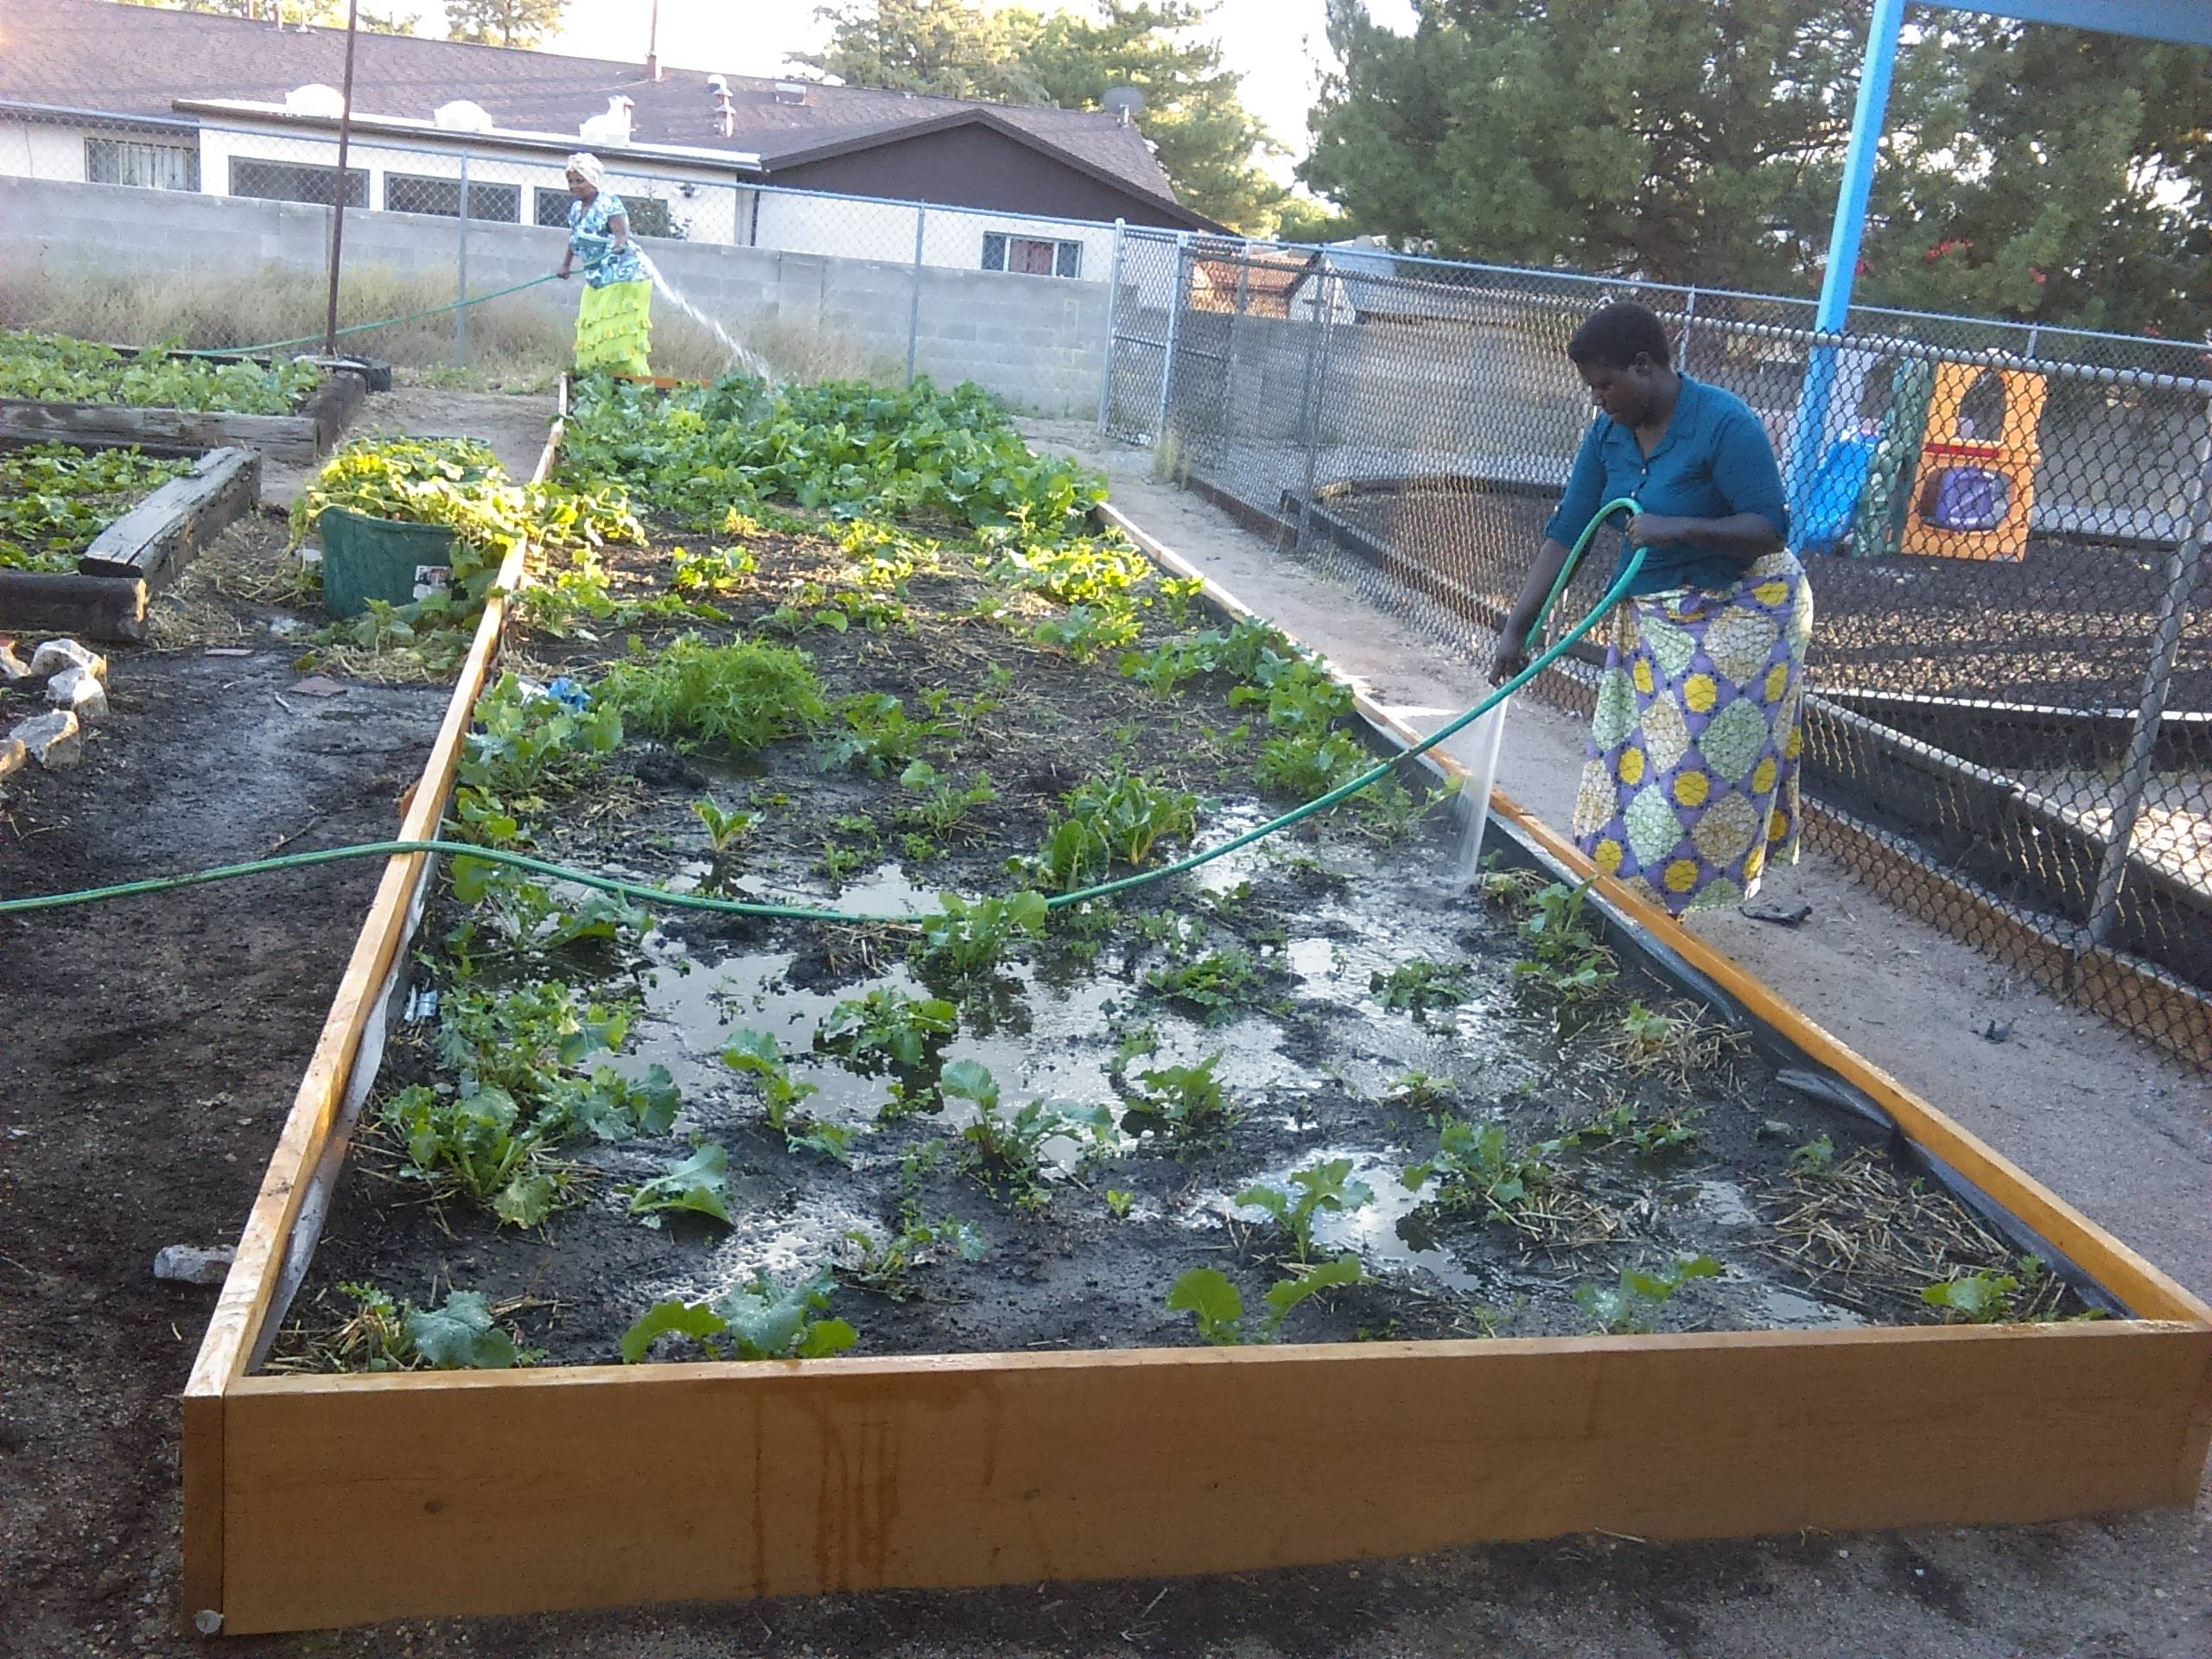 Growing Our own Food